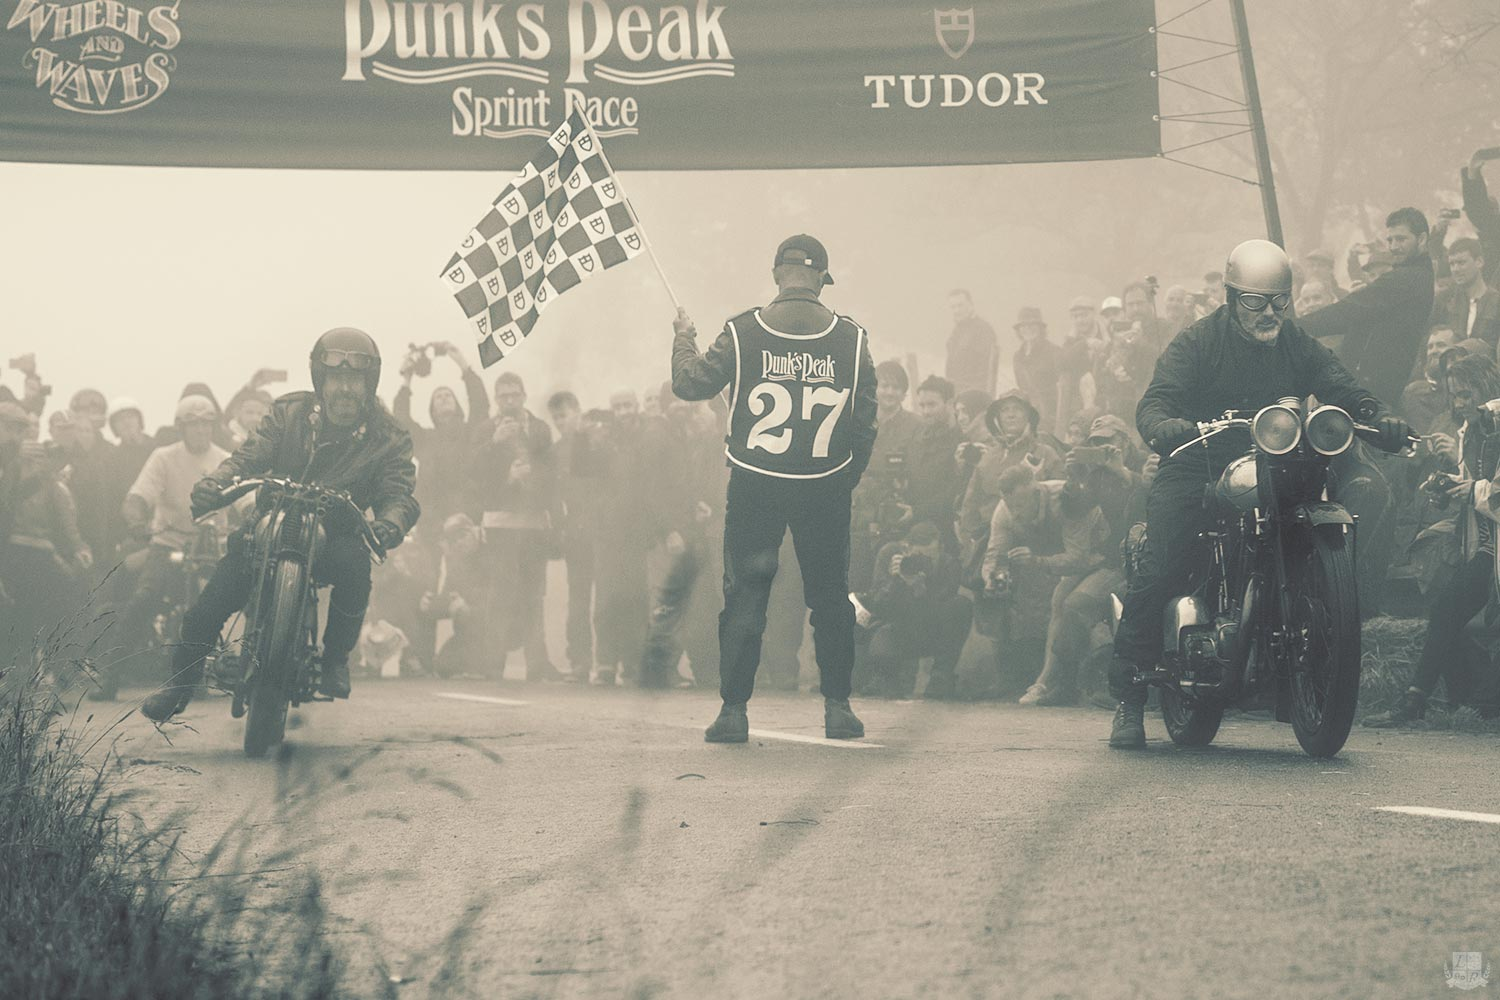 Tudor - Wheels and Waves 2016